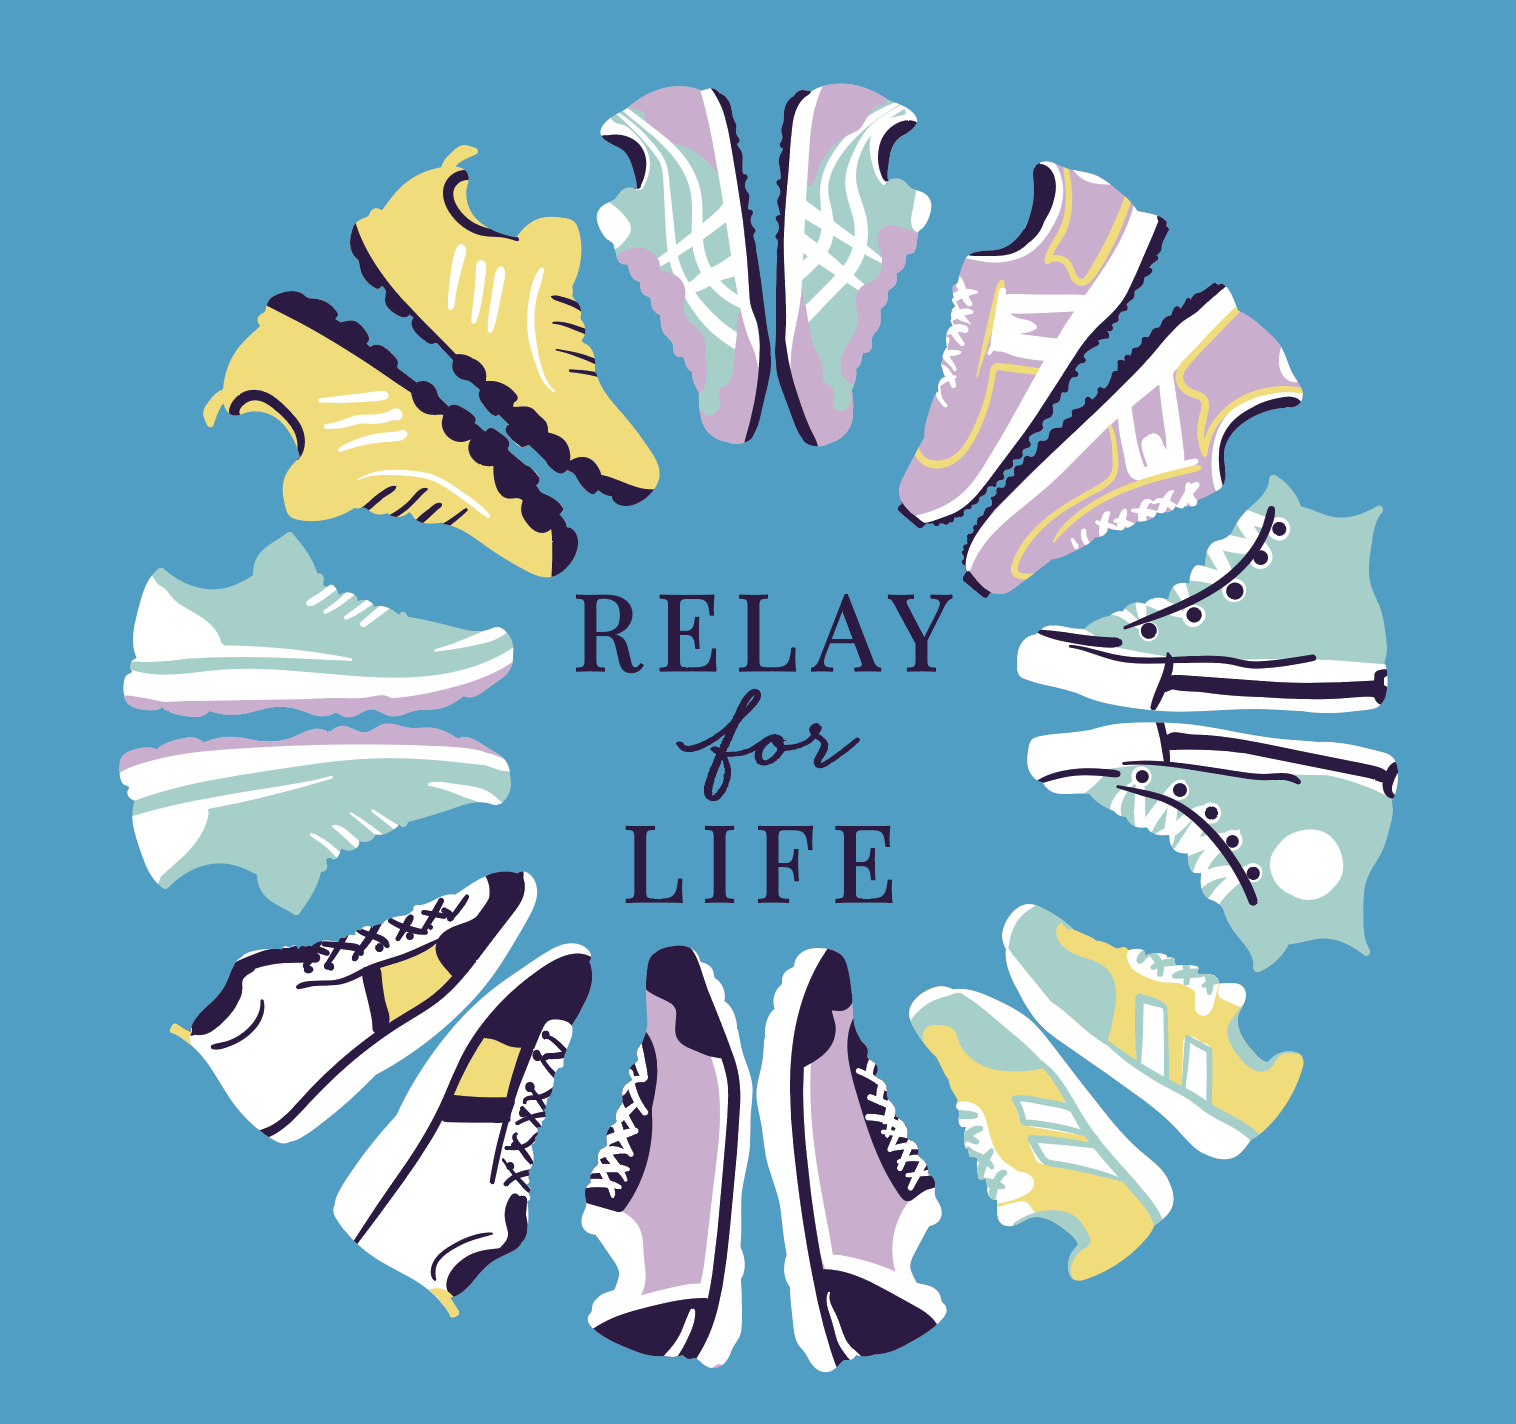 Relay for Life Design